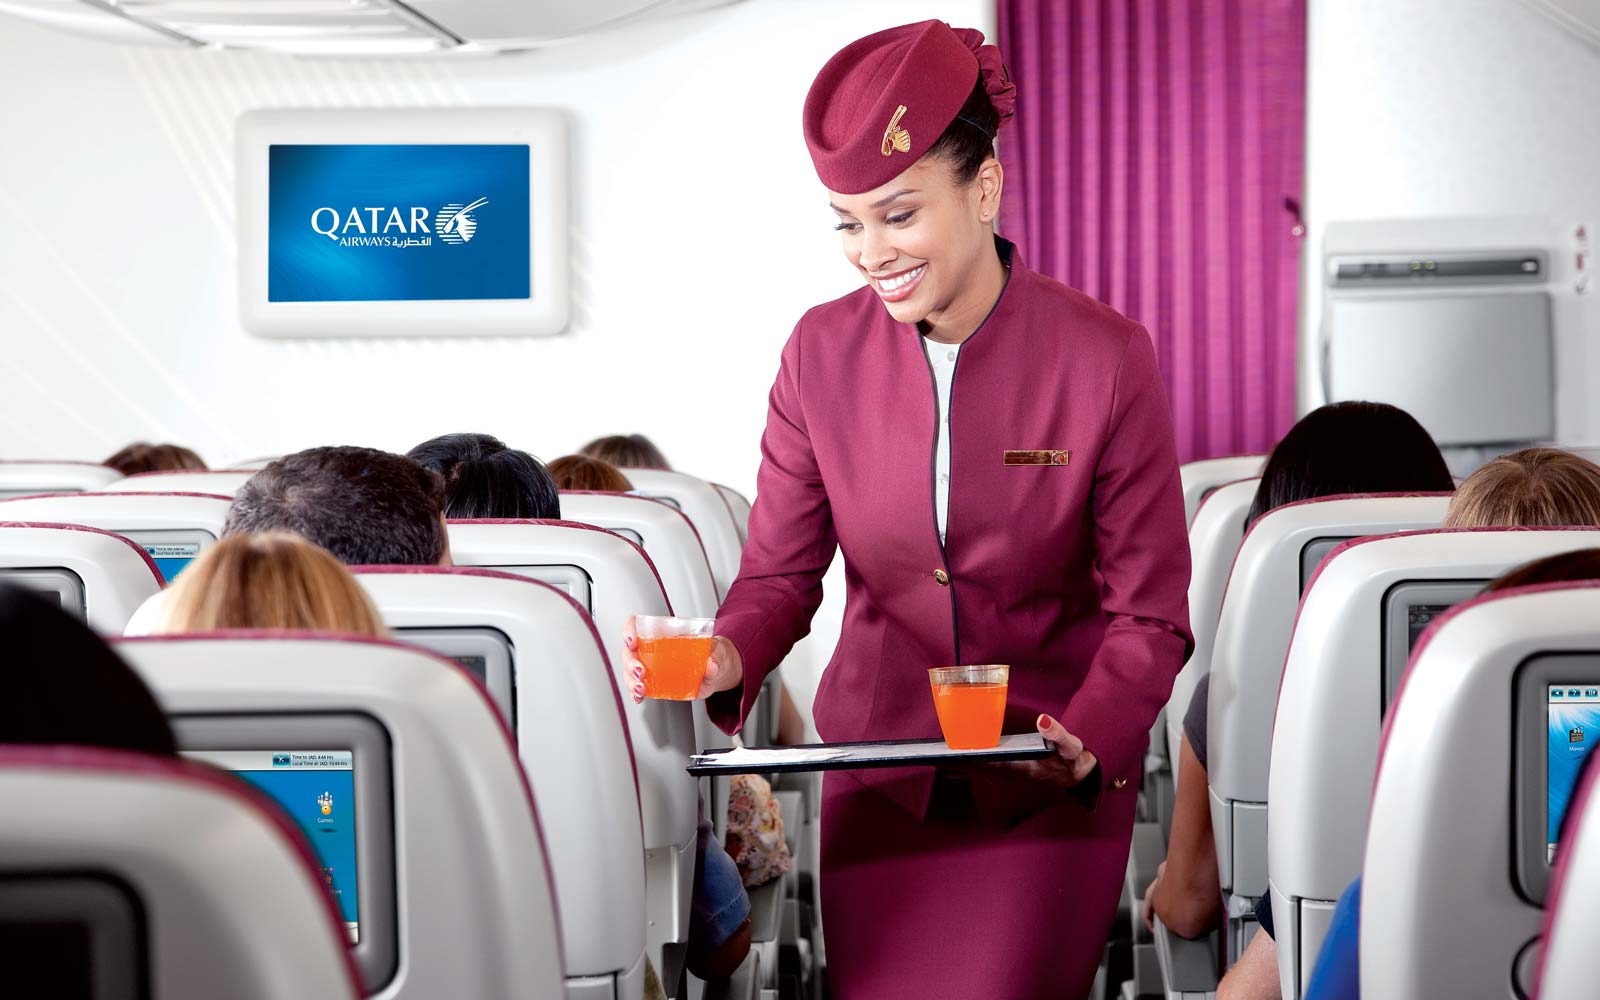 Cabin service on a Qatar Airways flight